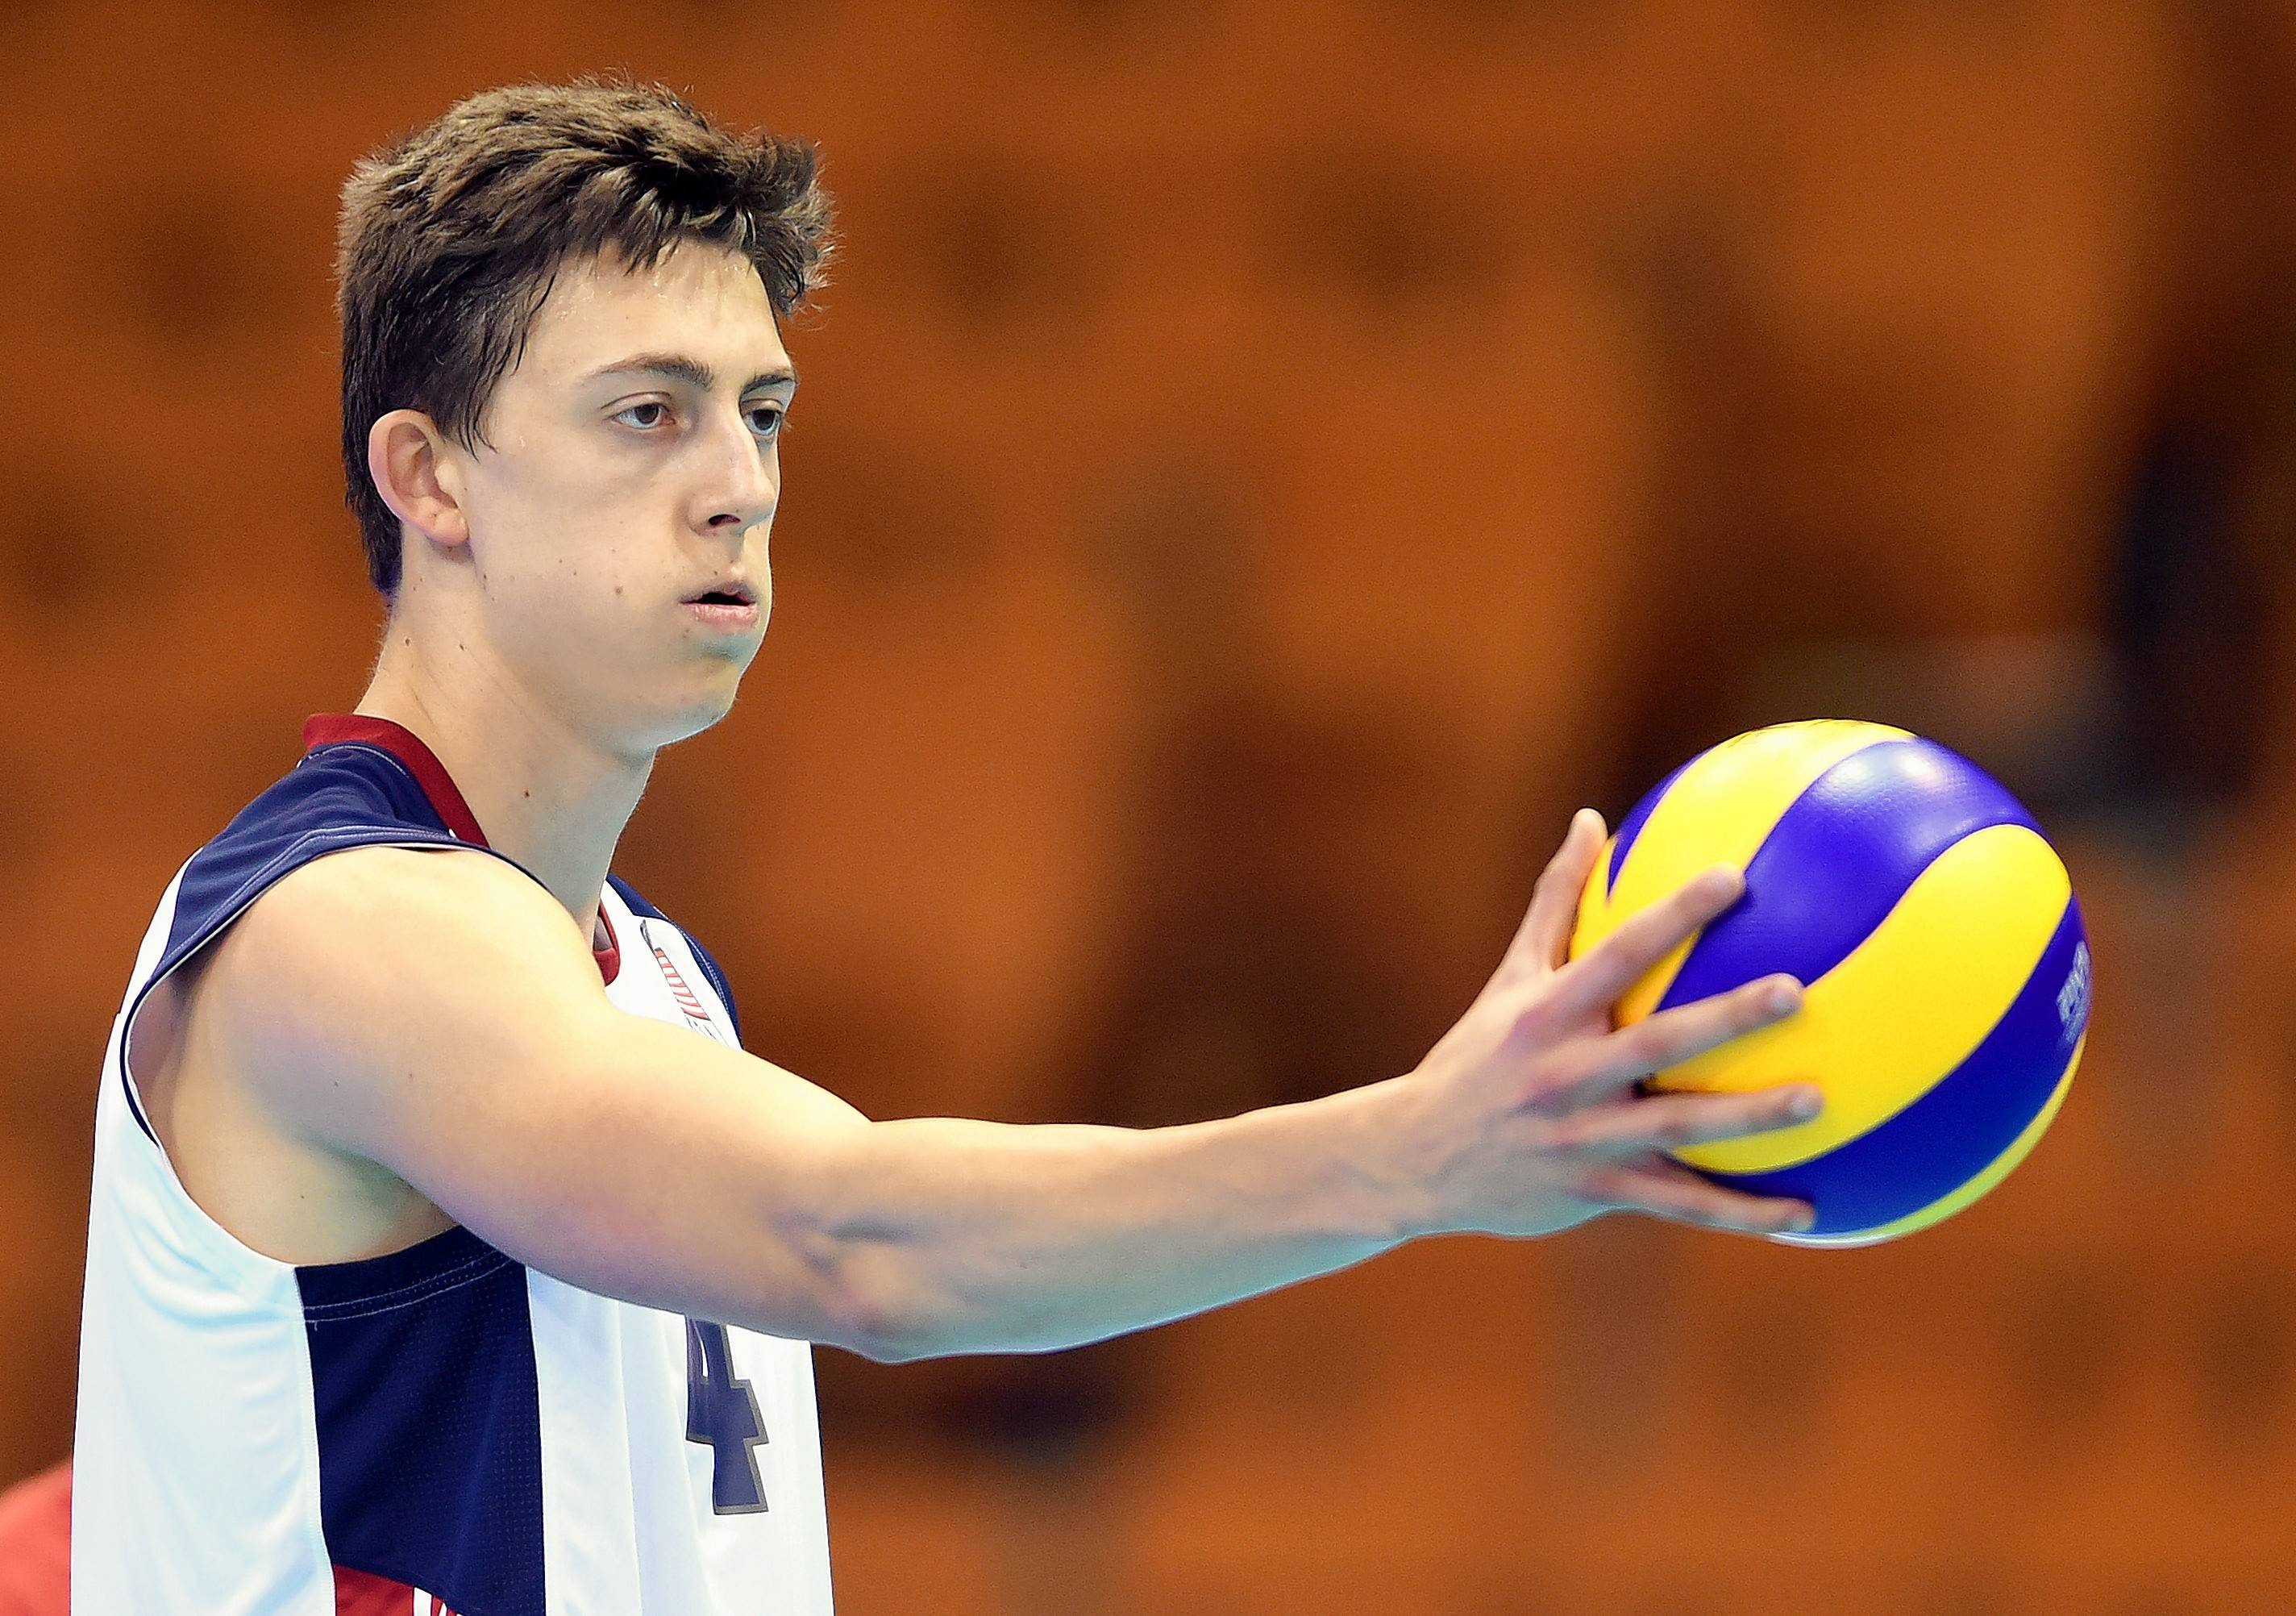 Jeffrey Jendryk, a star at Wheaton St. Francis and Loyola University, is a member of Team USA, which will play Brazil in two USAV matches at Sears Centre Arena this weekend.